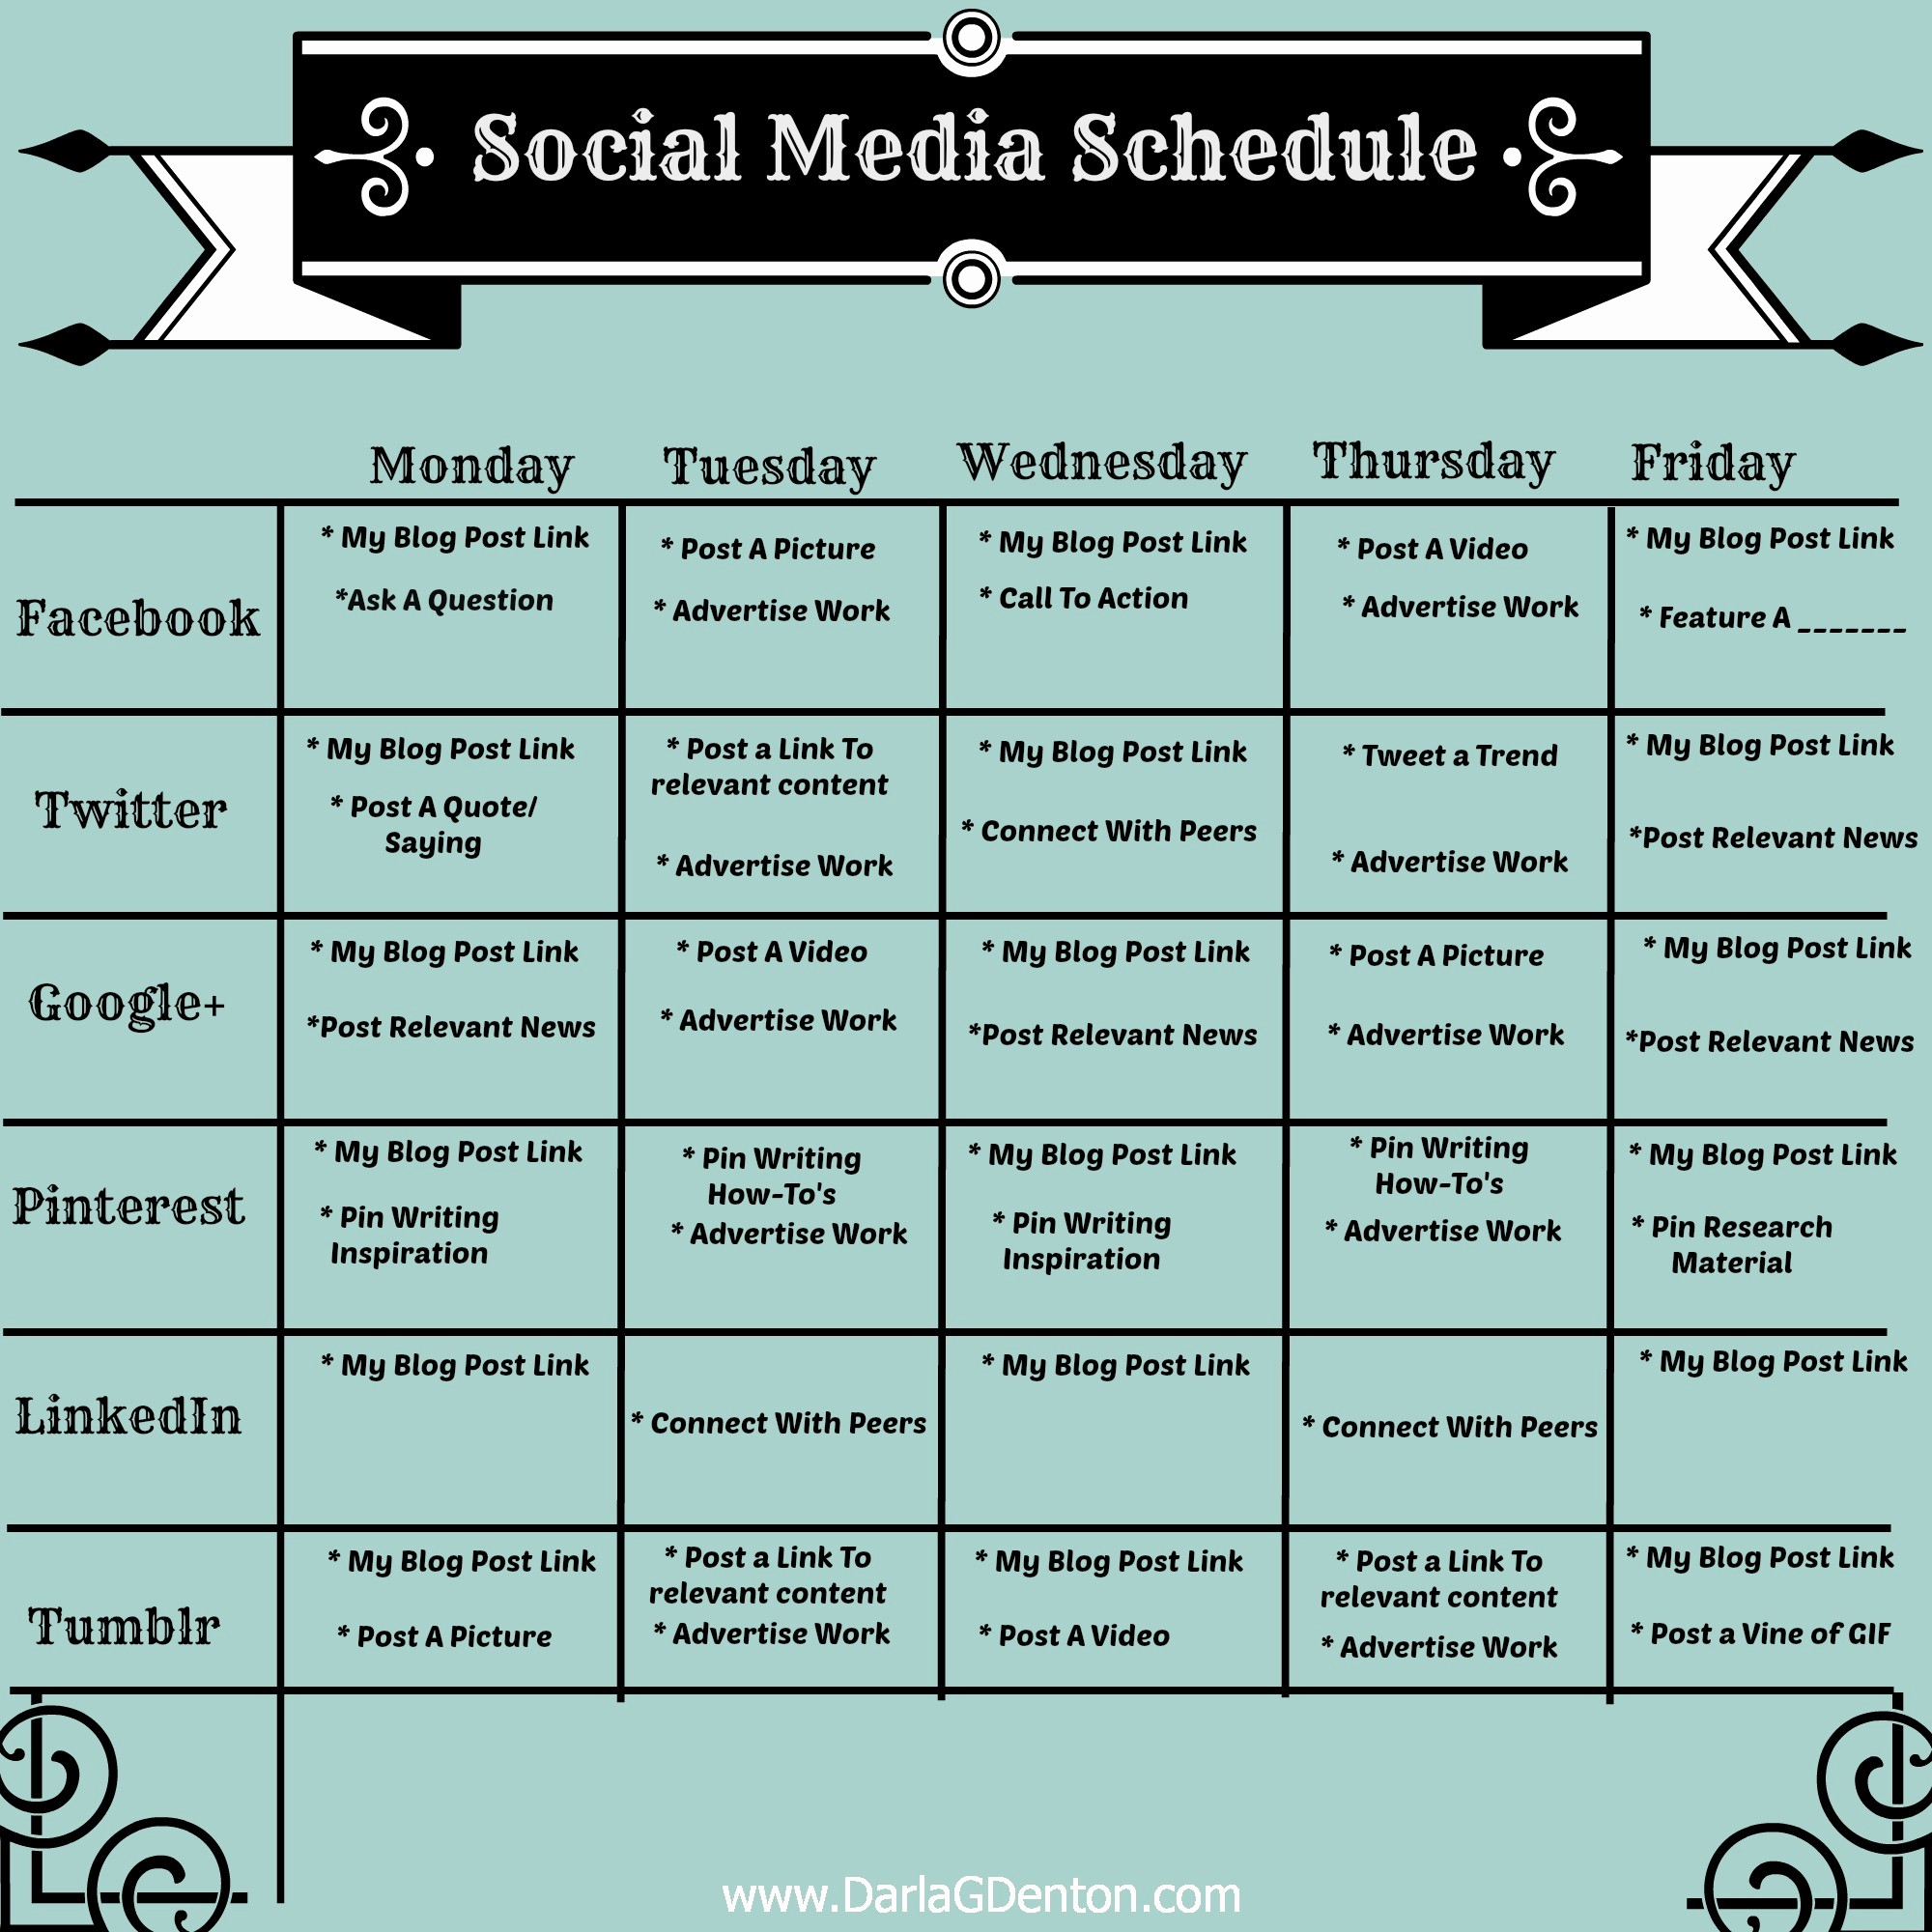 Social Media Post Schedule Template Luxury Job Search Washington County Pa social Media Dashboards